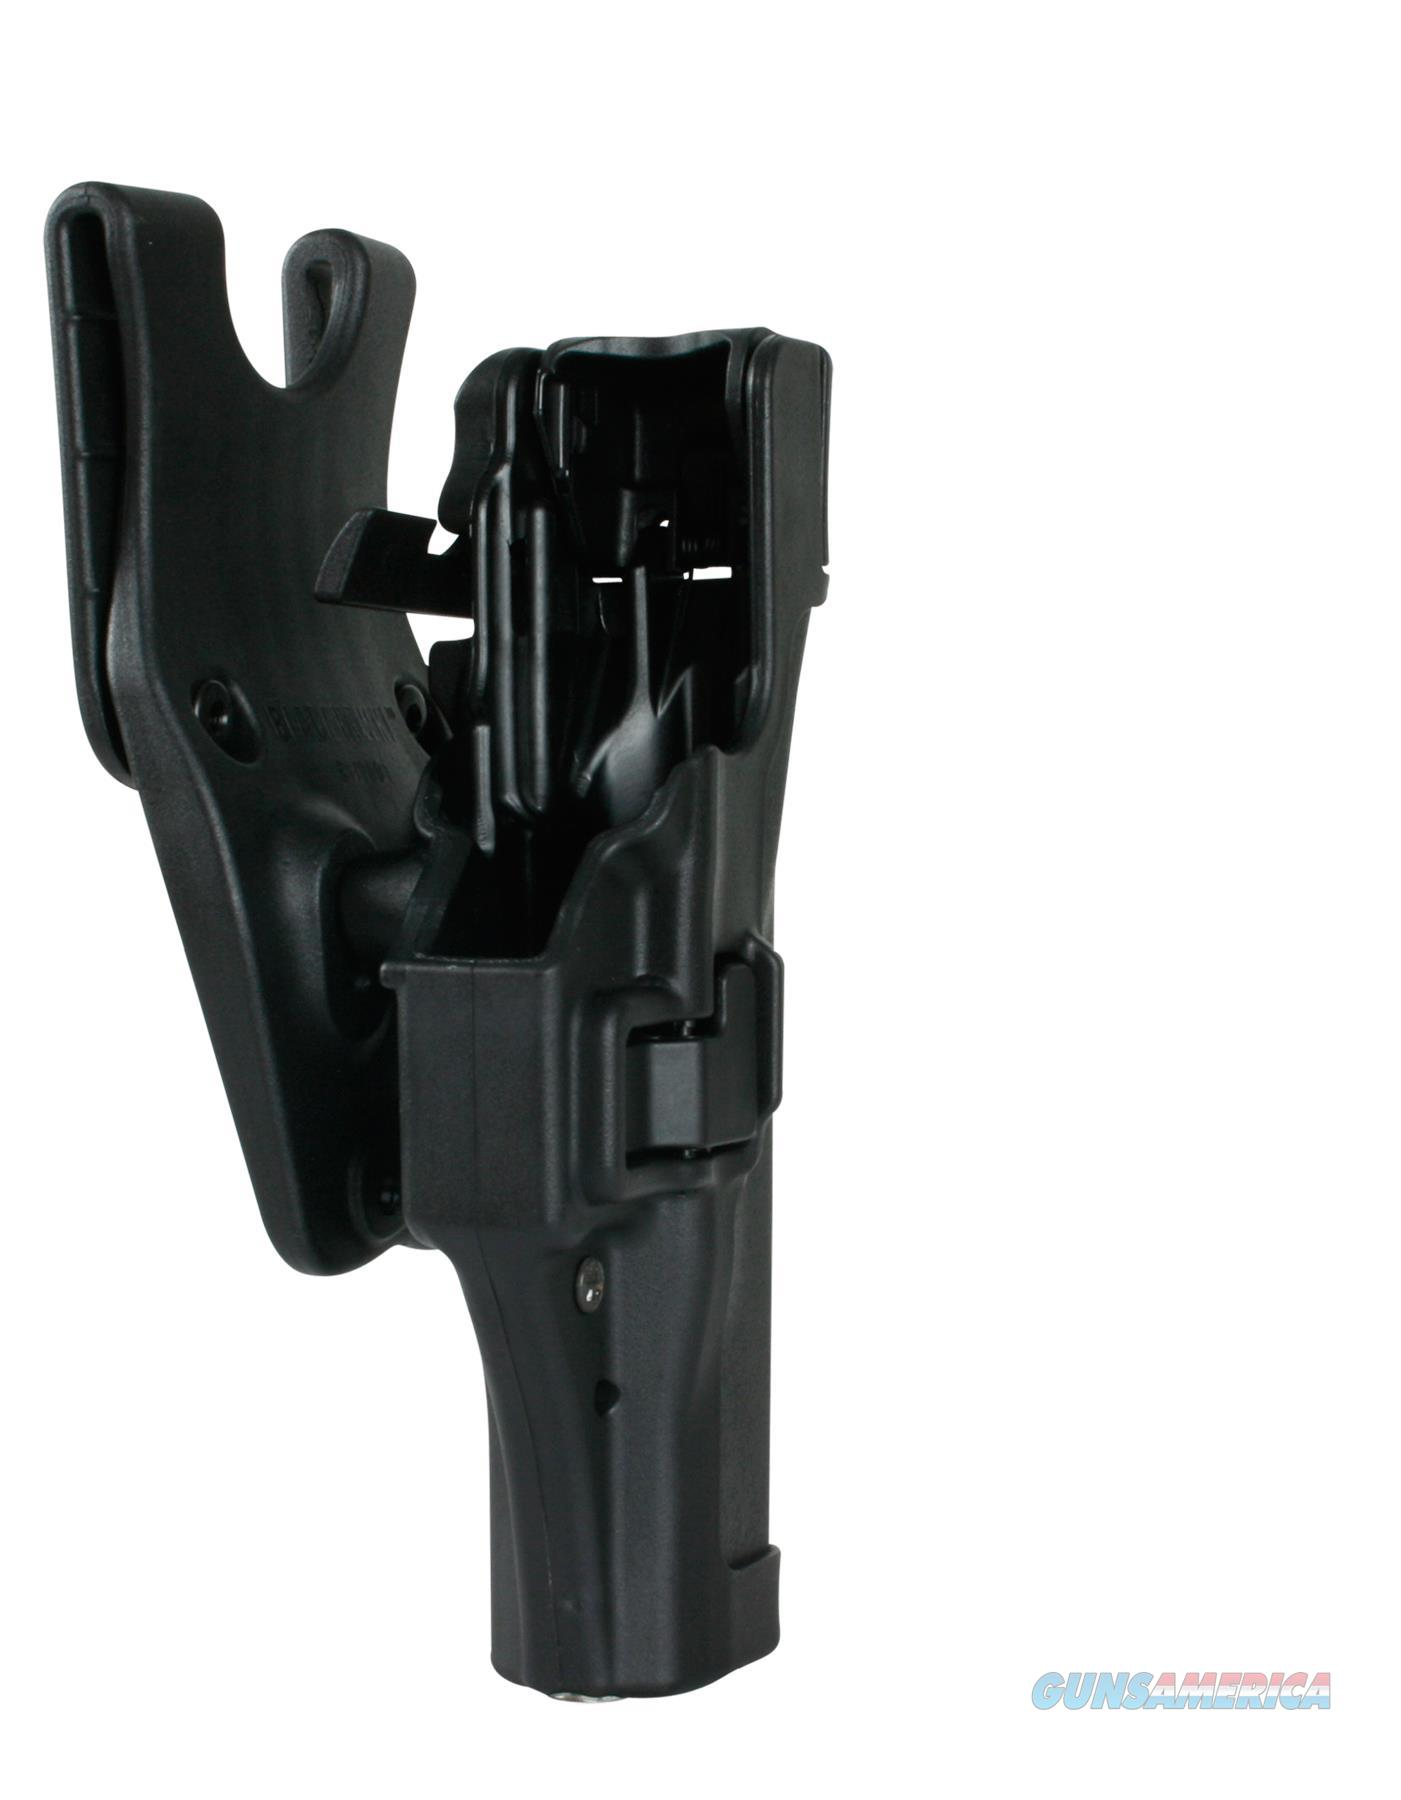 Bh Serpa Level 3 Duty For G17 Rh Blk 44H100BK-R  Non-Guns > Holsters and Gunleather > Other